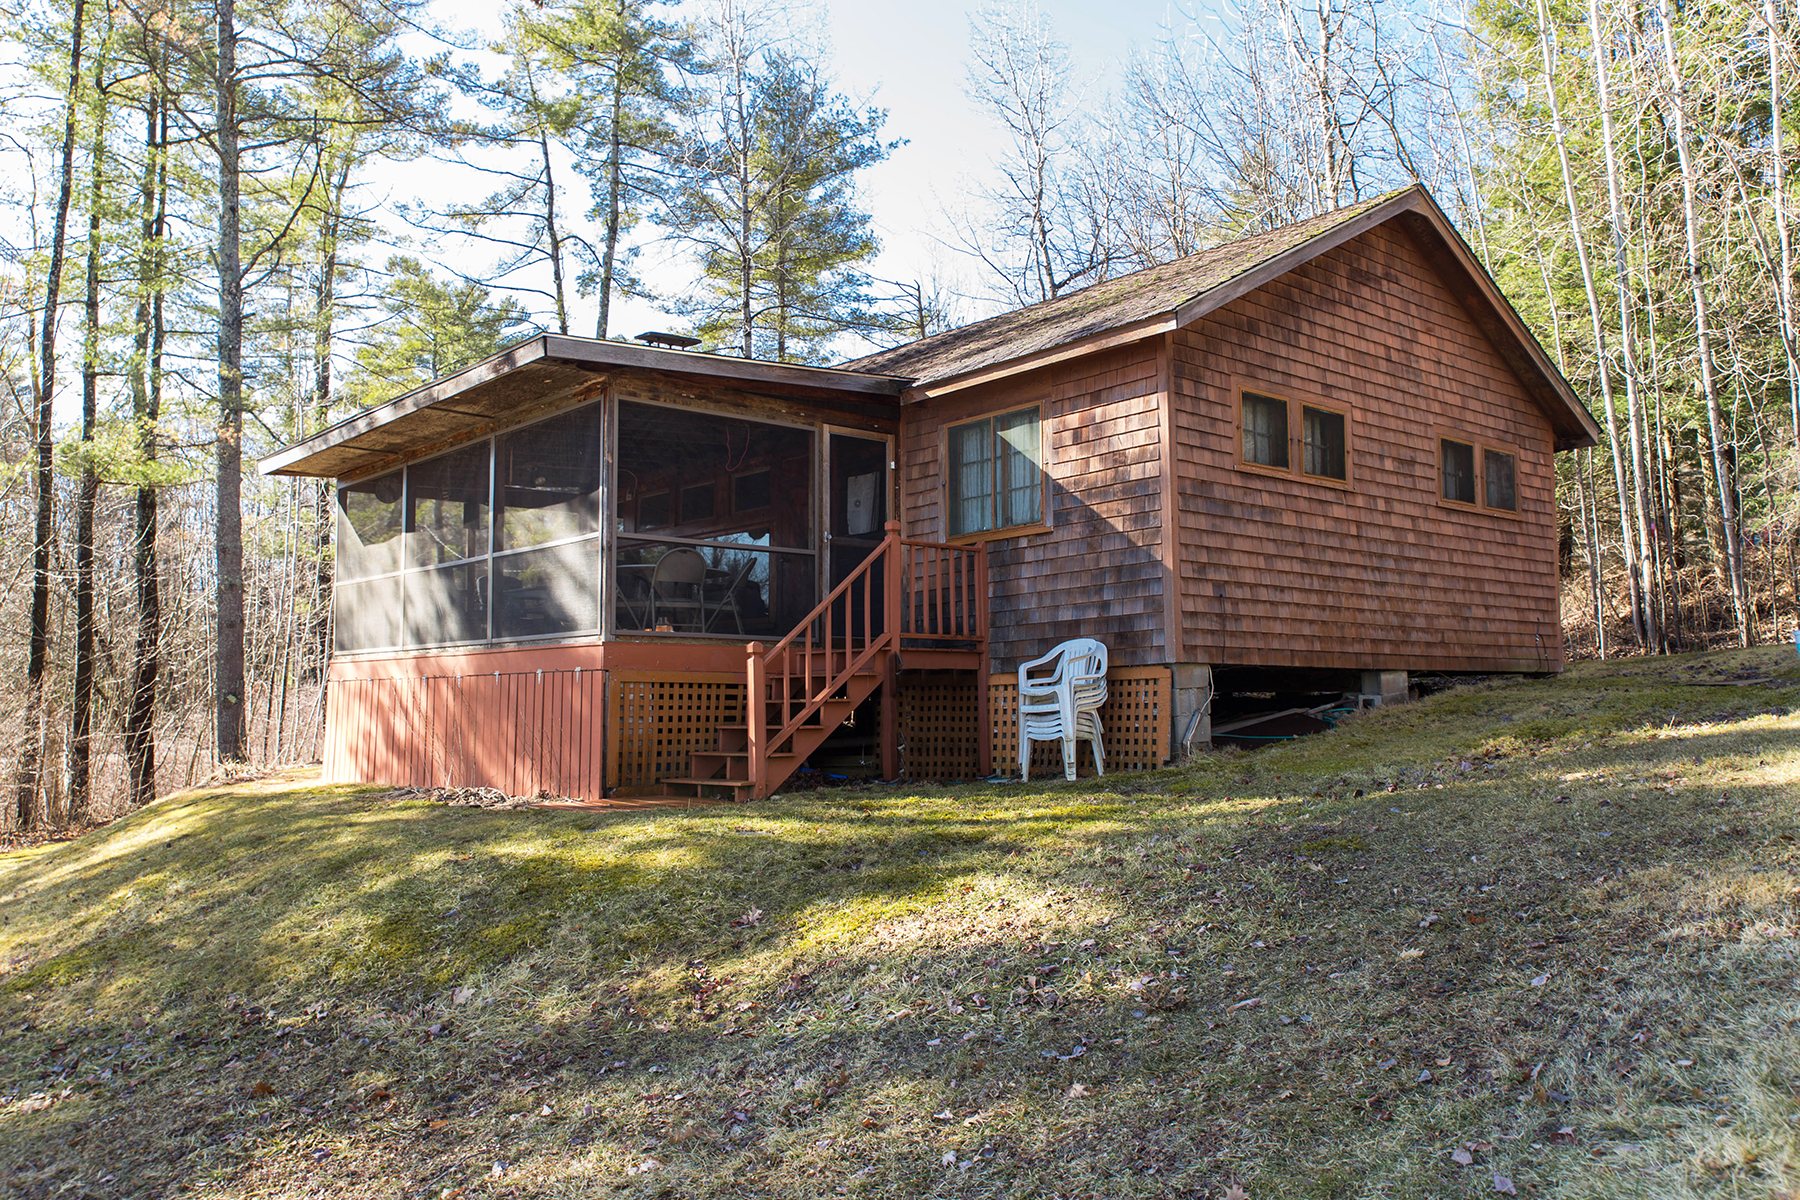 Additional photo for property listing at Adirondack Cottage on Serene Shores of Lake George 19  Pine Cove Rd Hague, Nueva York 12836 Estados Unidos